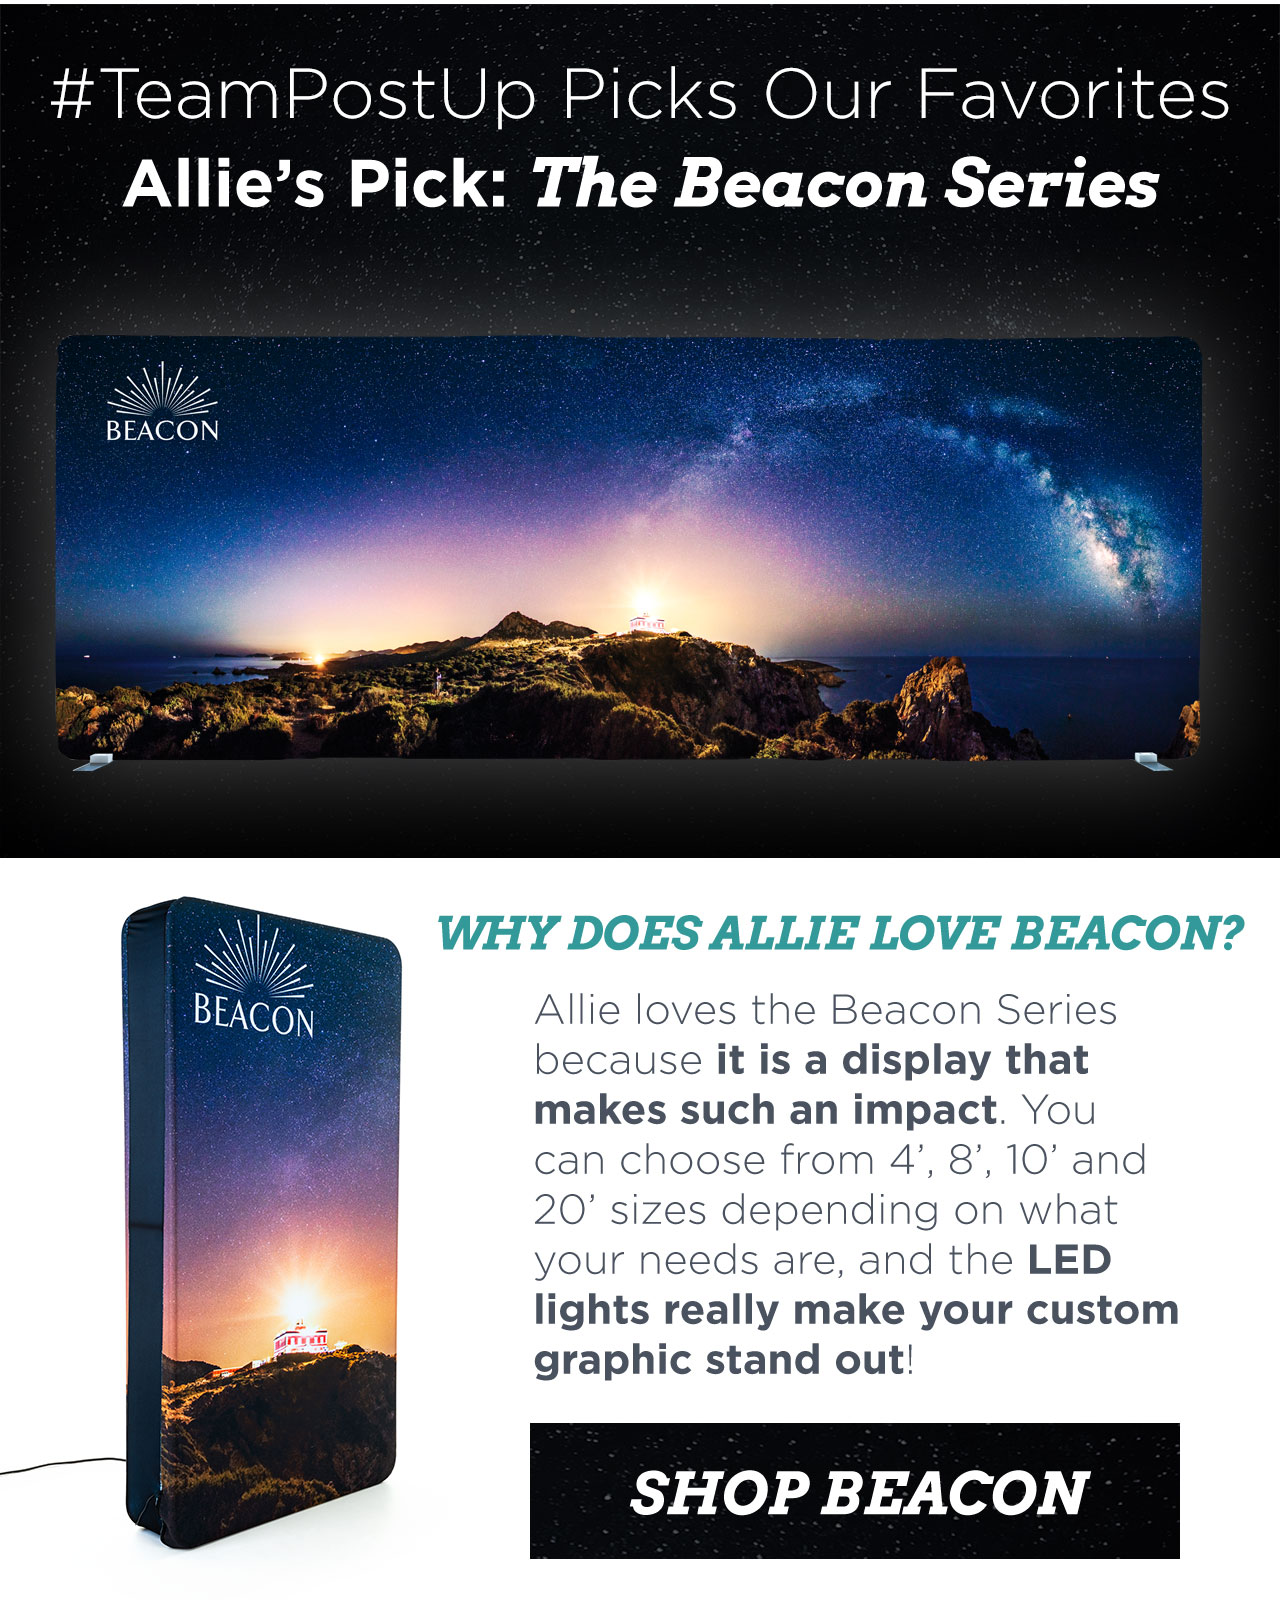 #TeamPostUp Picks Our Favorites - Allie's Pick: The Beacon Series - WHY DOES ALLIE LOVE BEACON? Allie loves the Beacon Series because it is a display that makes such an impact. You can choose from 4', 8', 10' and 20' sizes depending on what your needs are, and the LED lights really make your custom graphic stand out!